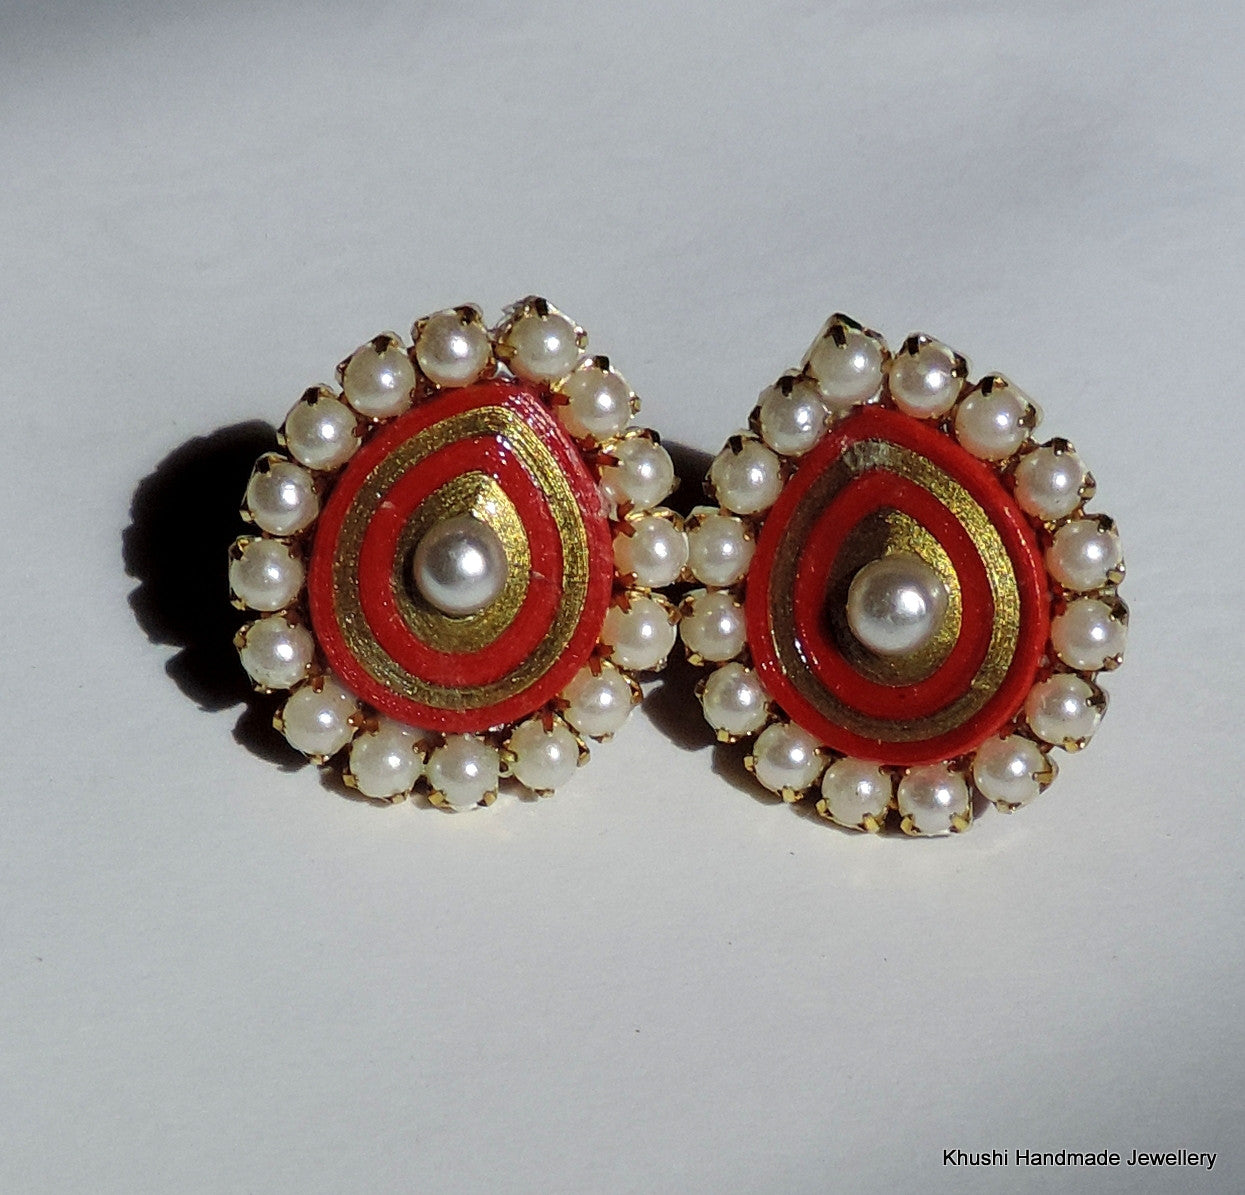 Red studs with pearl lining - Khushi Handmade Jewellery